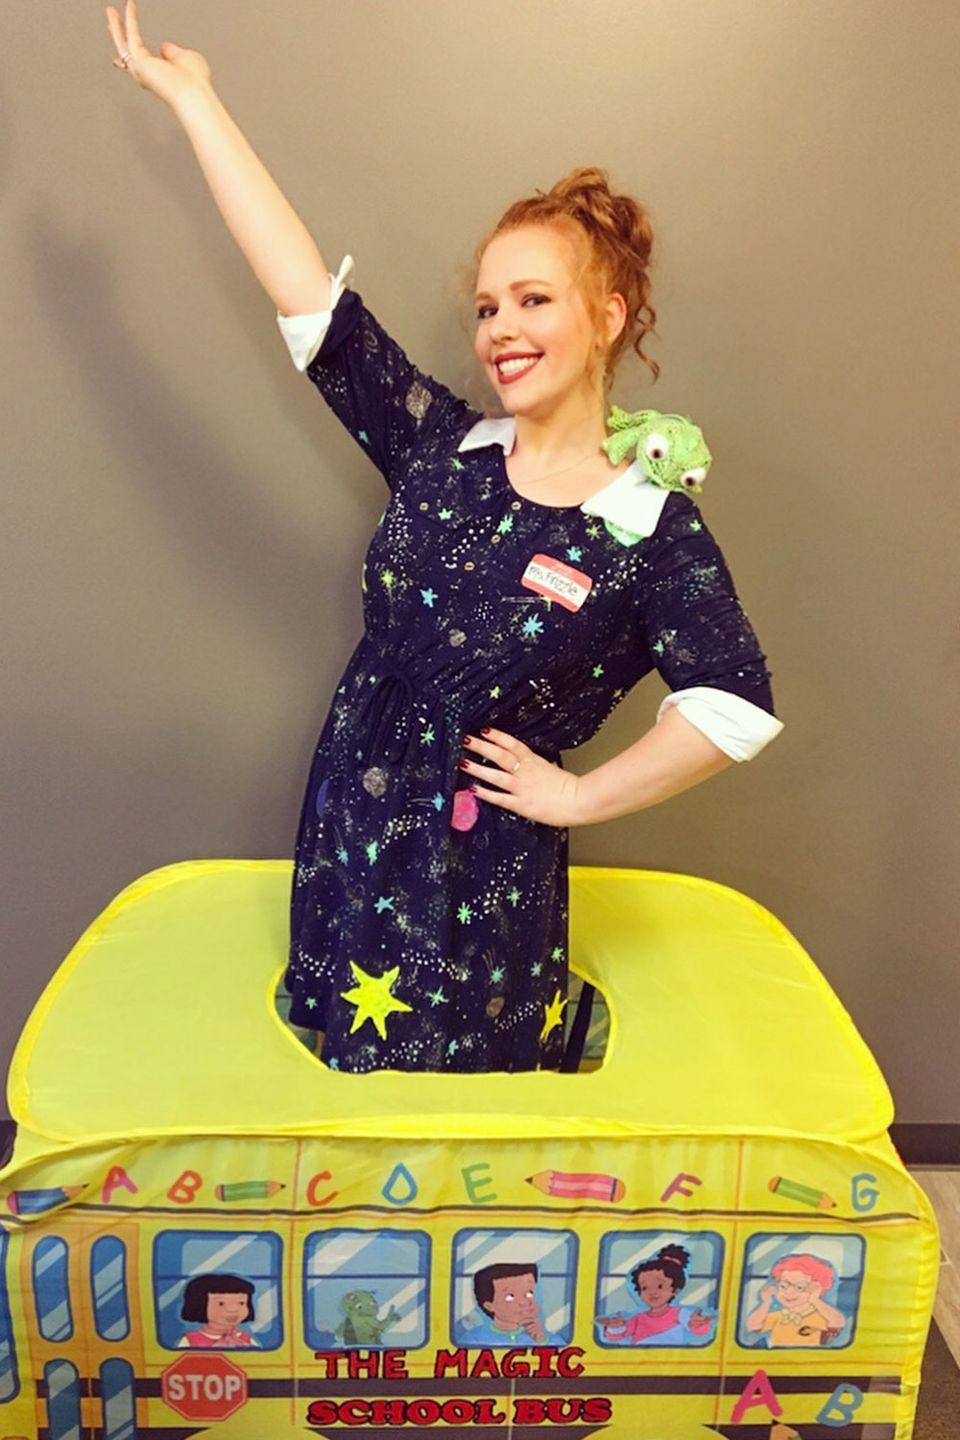 "<p>If you're going to dress as a teacher for Halloween, make that teacher Miss Frizzle from <a href=""https://www.goodhousekeeping.com/life/entertainment/news/a45991/magic-school-bus-trailer/"" rel=""nofollow noopener"" target=""_blank"" data-ylk=""slk:The Magic School Bus."" class=""link rapid-noclick-resp""><em>The Magic School Bus</em>.</a> It's a costume that's as easily recognizable <a href=""http://www.gingerandivory.com/2018/10/01/miss-frizzle-halloween-costume/"" rel=""nofollow noopener"" target=""_blank"" data-ylk=""slk:as it is to make"" class=""link rapid-noclick-resp"">as it is to make</a>. </p>"